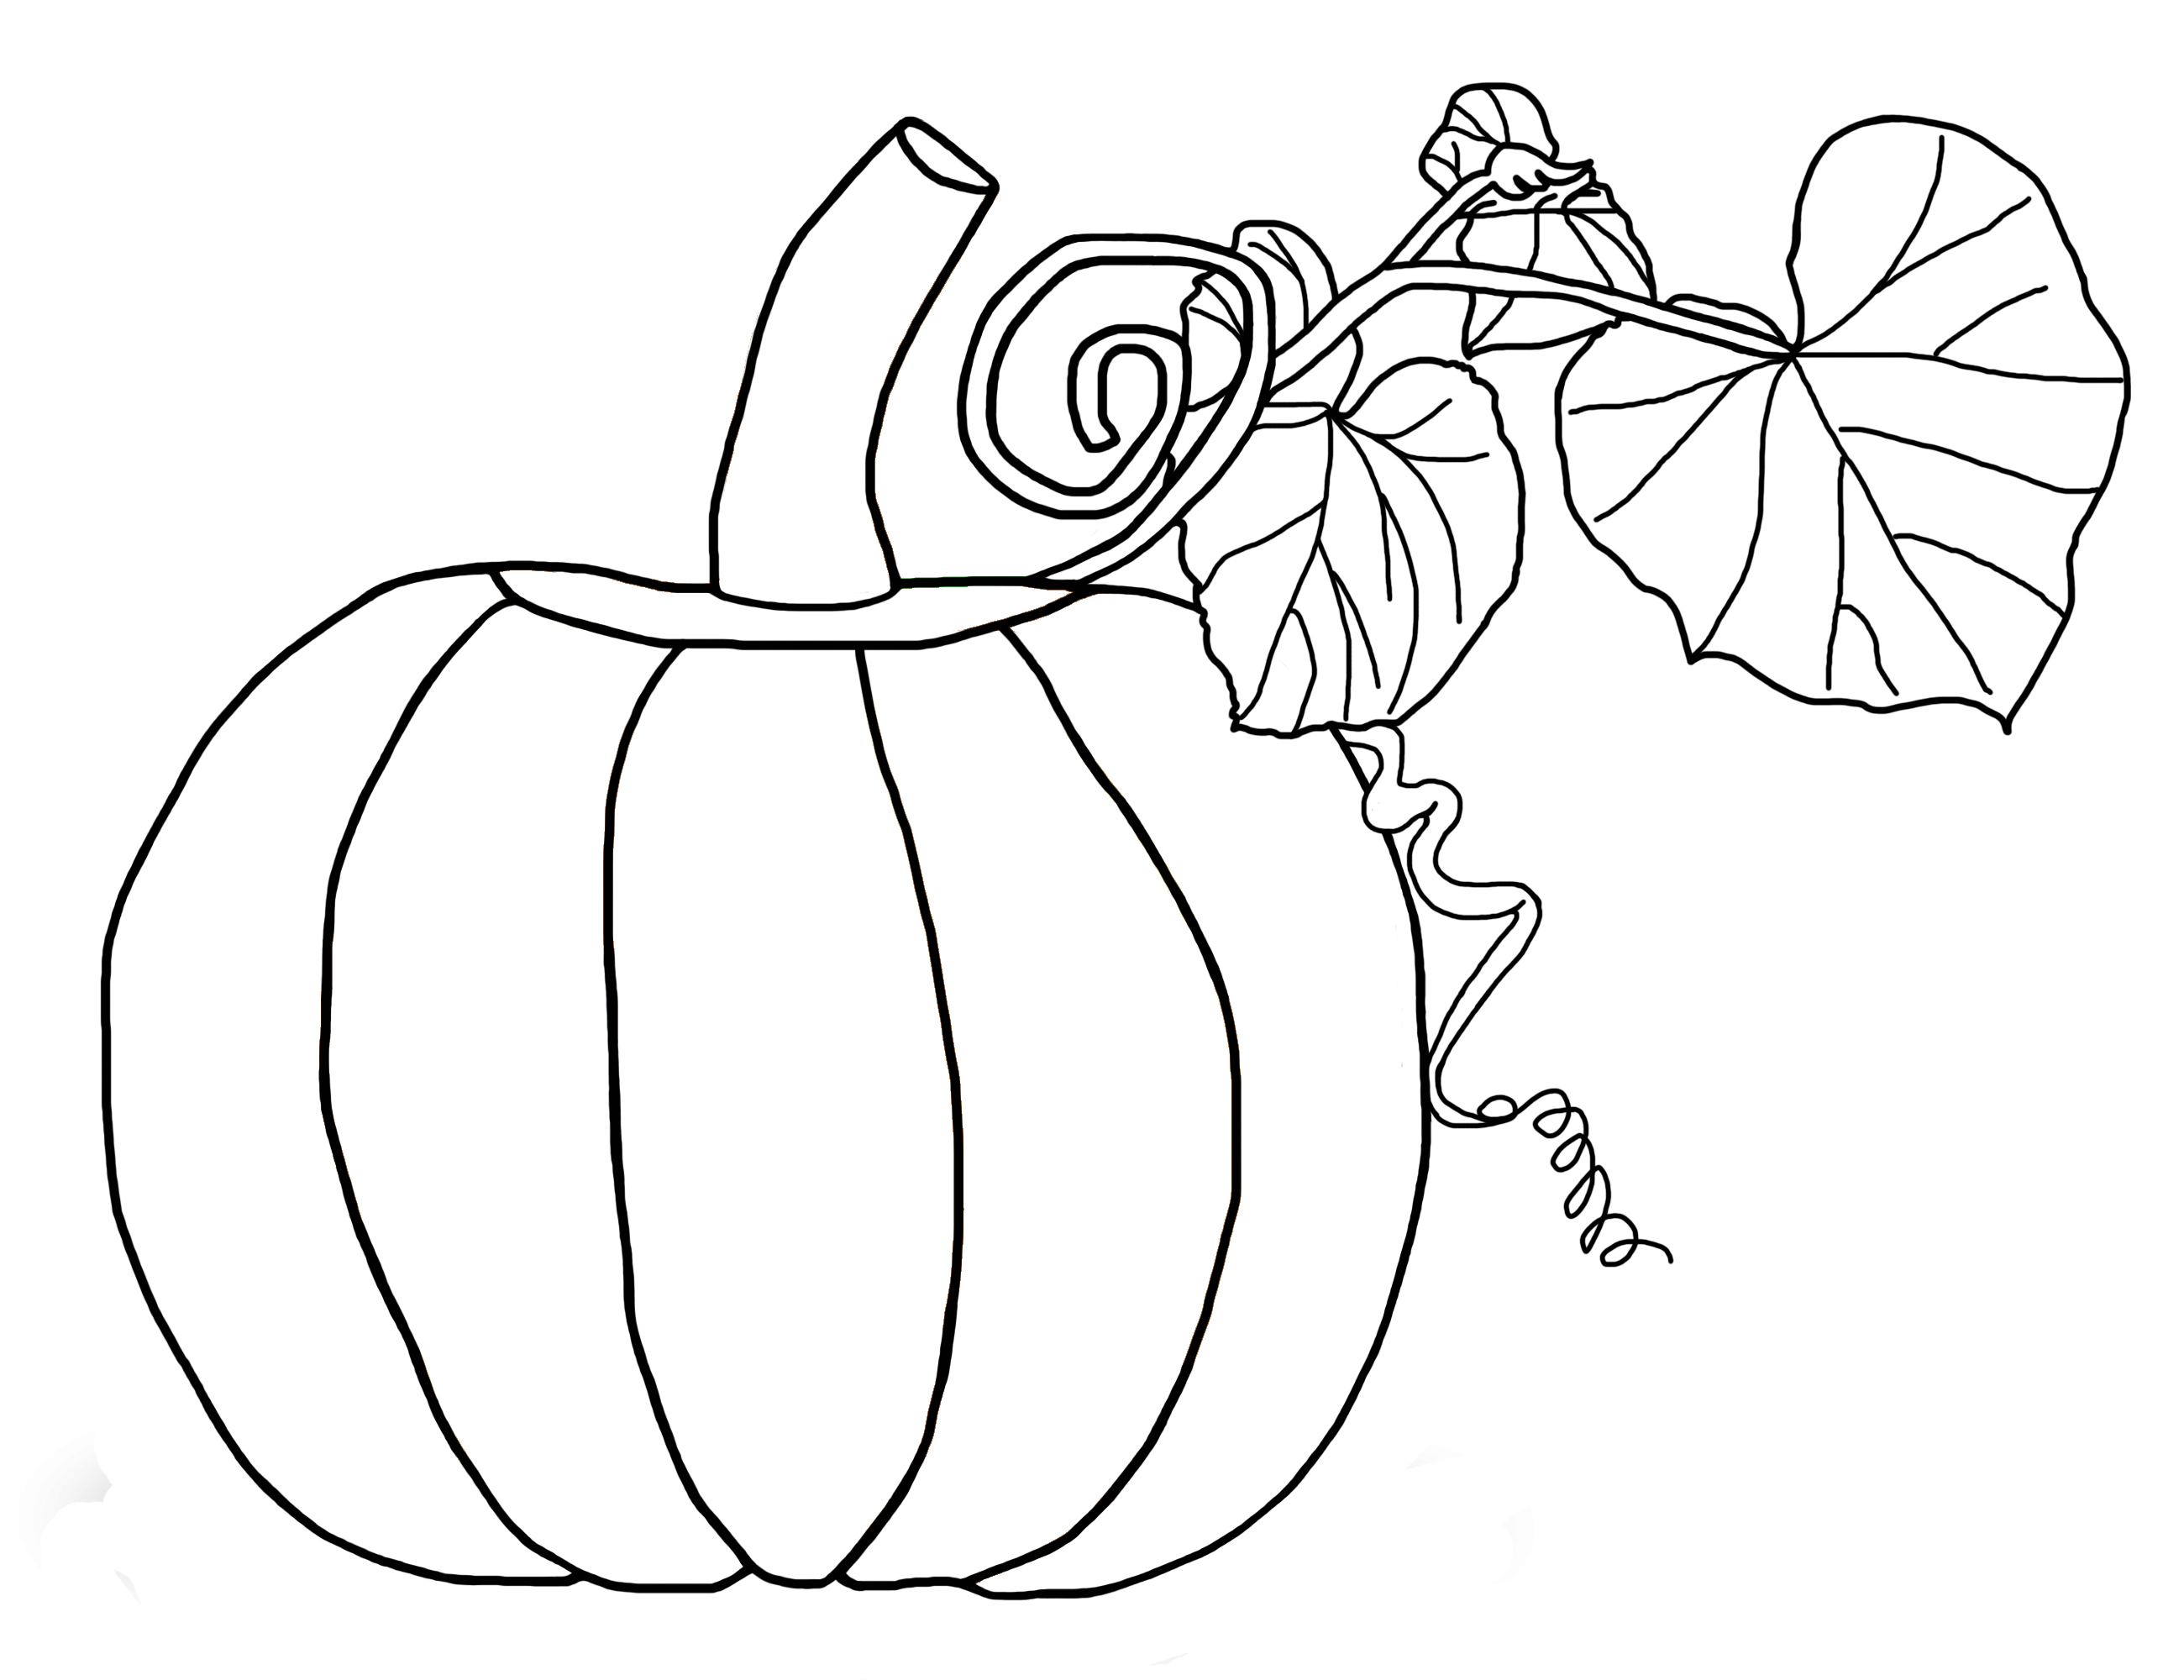 coloring pages of a pumpkin top 10 free printable halloween pumpkin coloring pages online a of coloring pumpkin pages